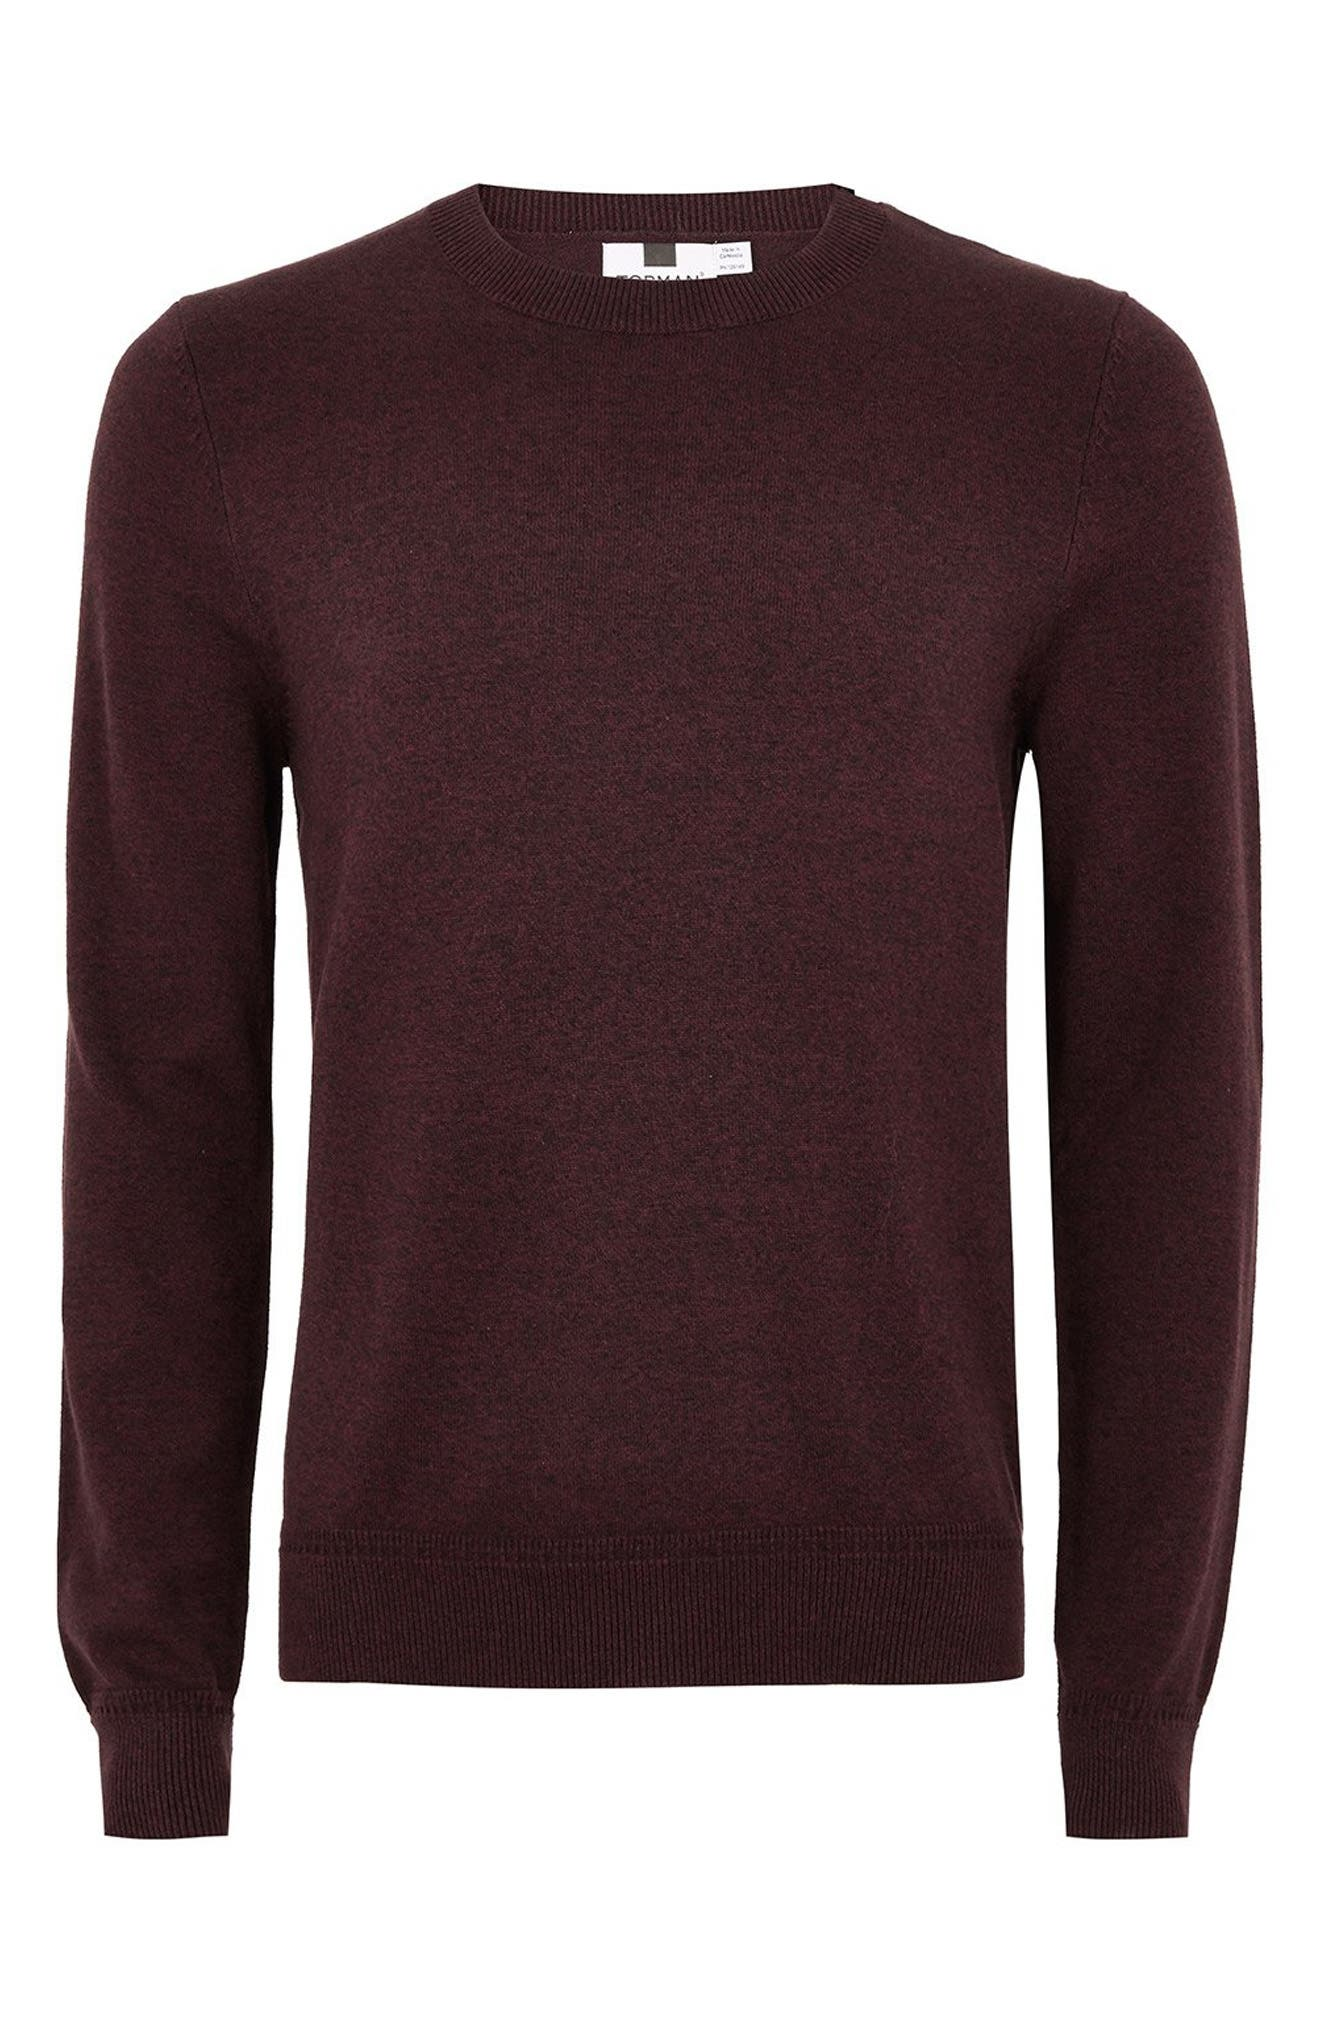 Classic Crewneck Sweater,                             Alternate thumbnail 4, color,                             BURGUNDY